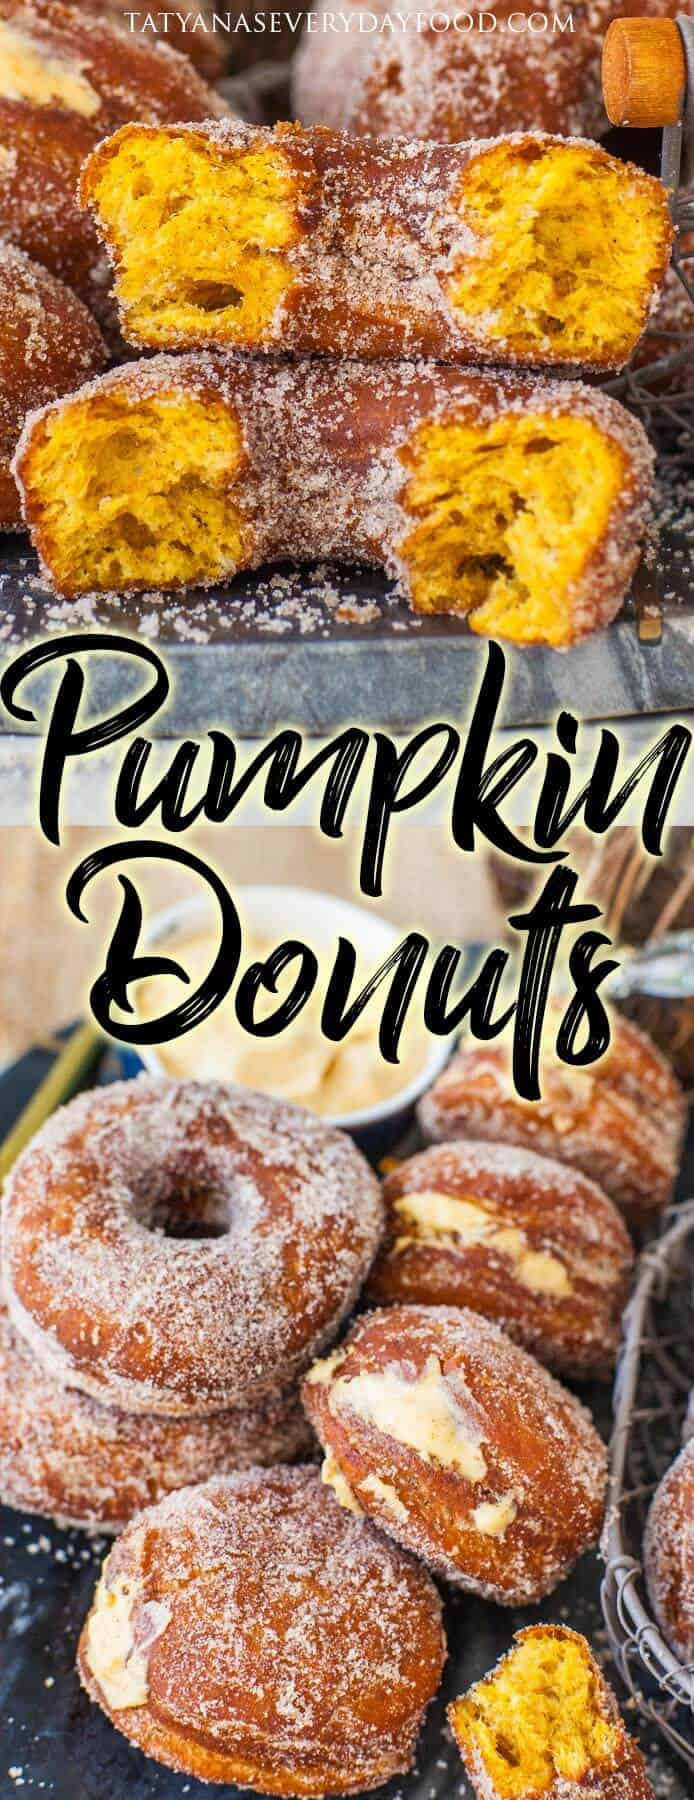 Amazing Pumpkin Donuts 2 Ways (video)